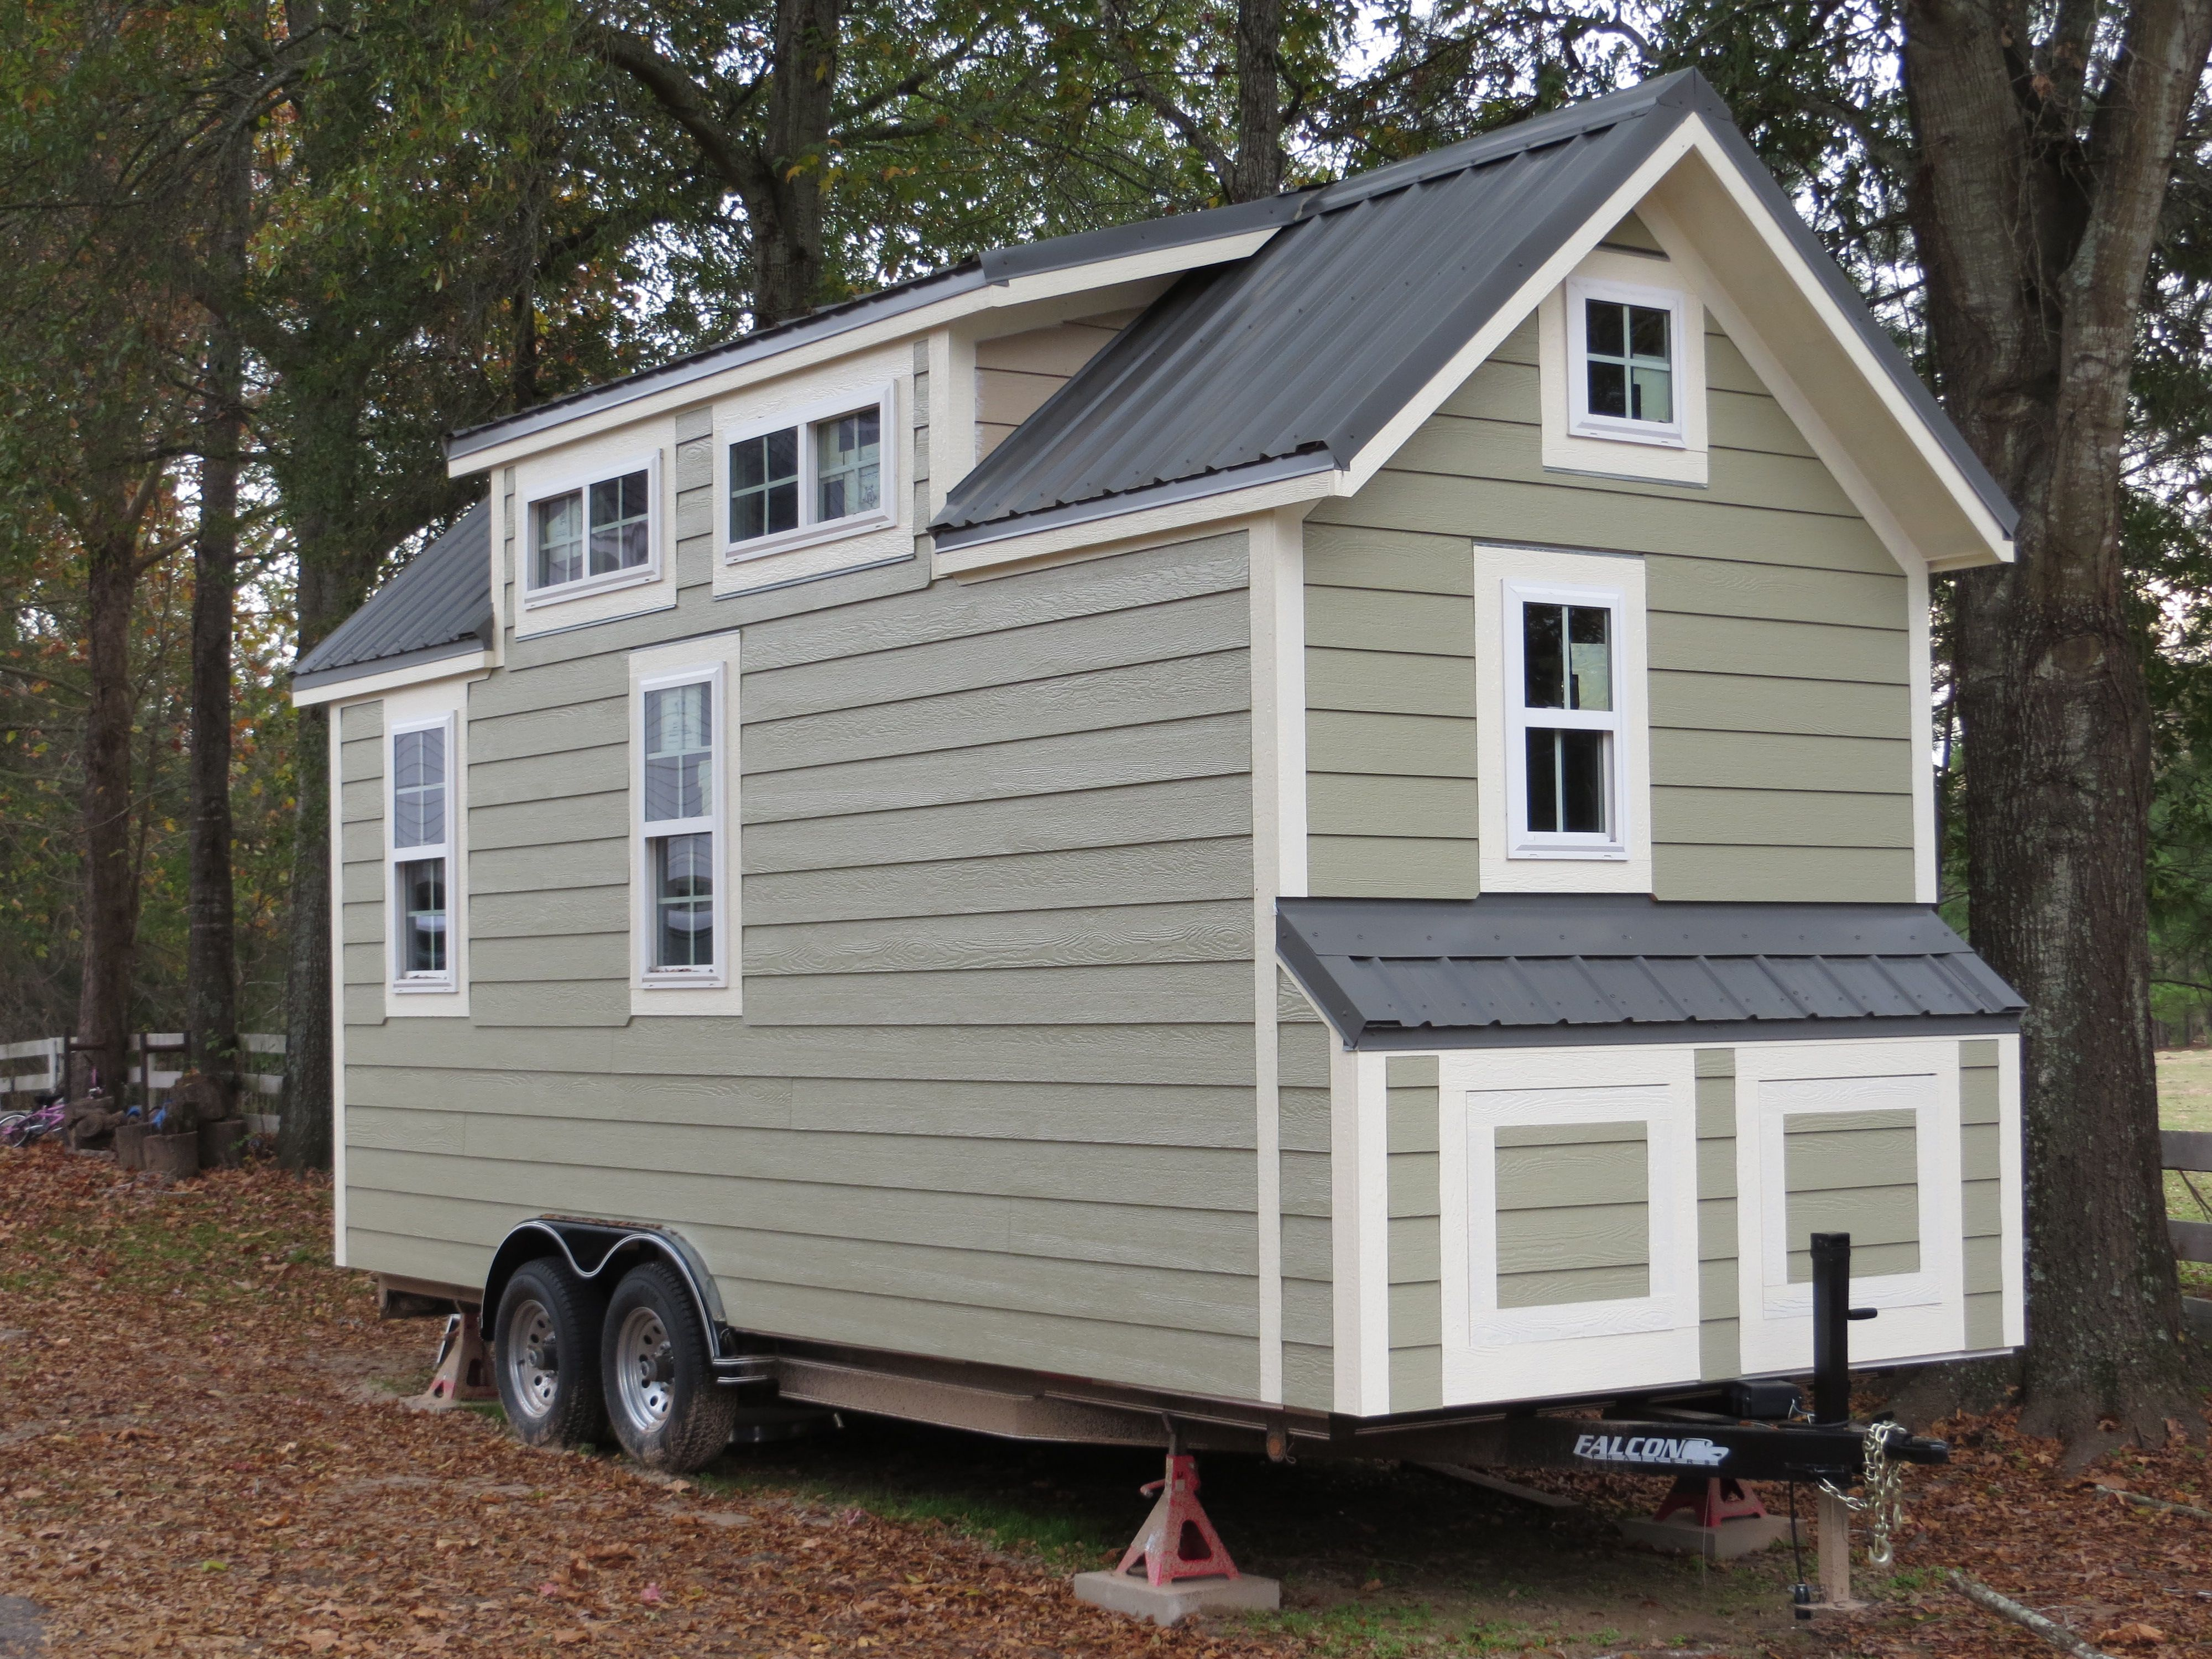 Completed Tiny House Shell For Sale   Tiny House Listings